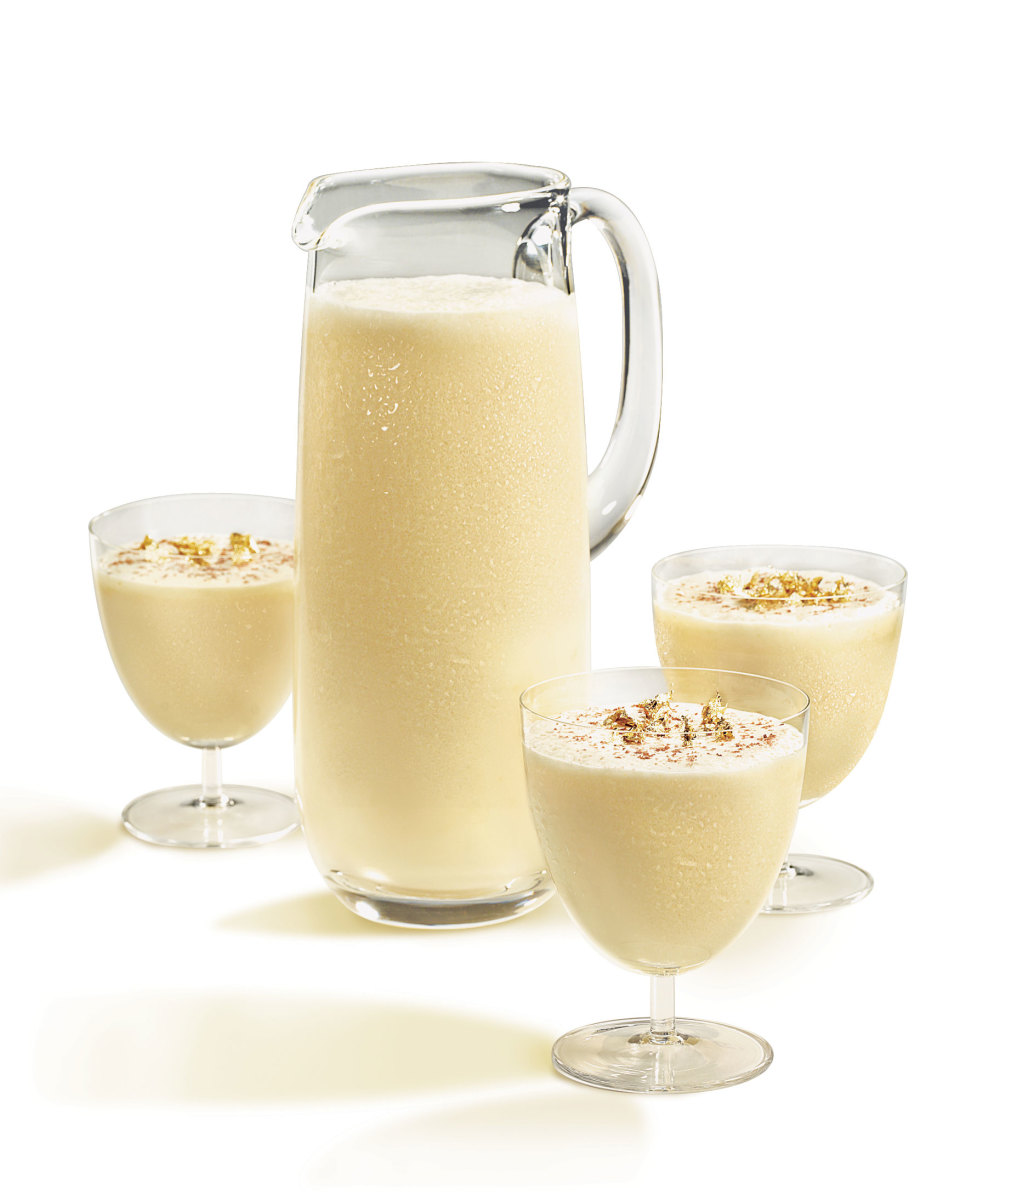 Easy Eggnog Recipes - Low-Fat, Fat-Free, Sugar-Free, Dairy-Free